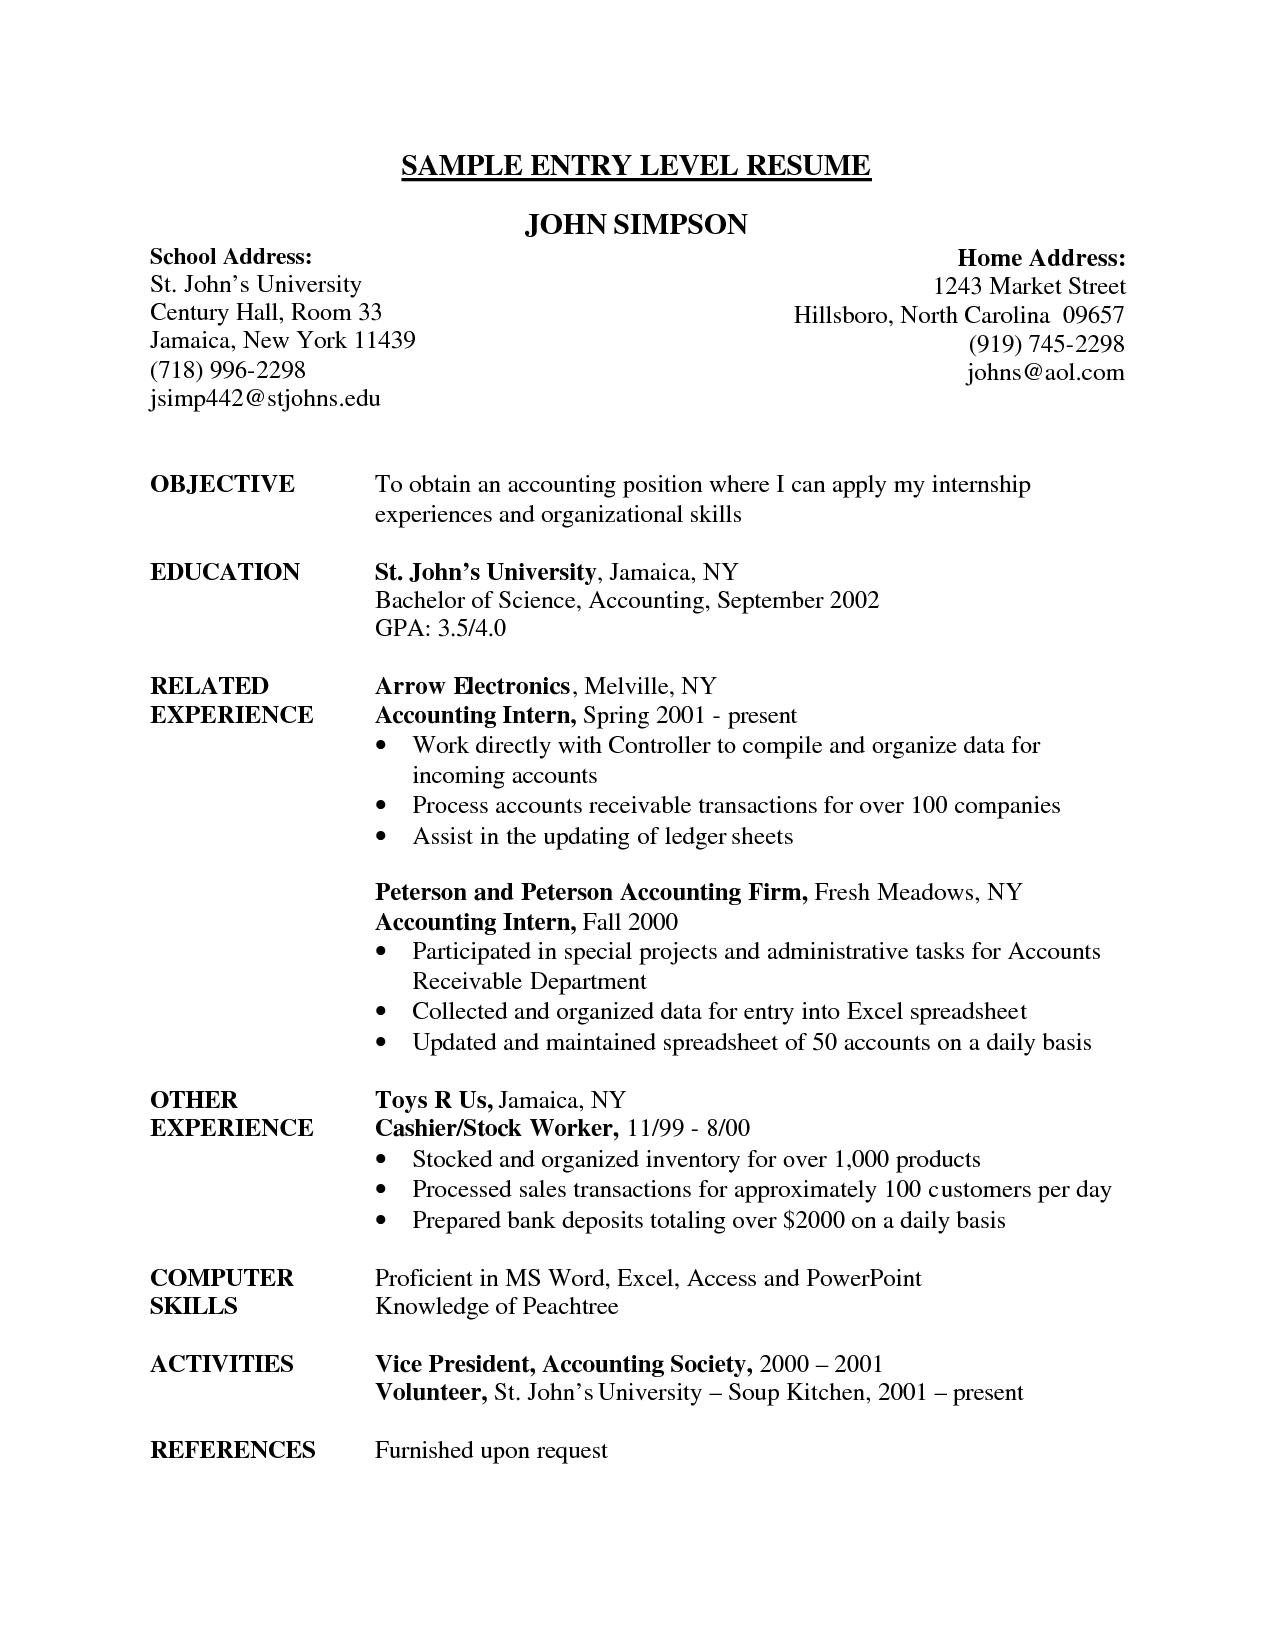 entry level accounting resume sample objective related experience - Objectives For Entry Level Resumes